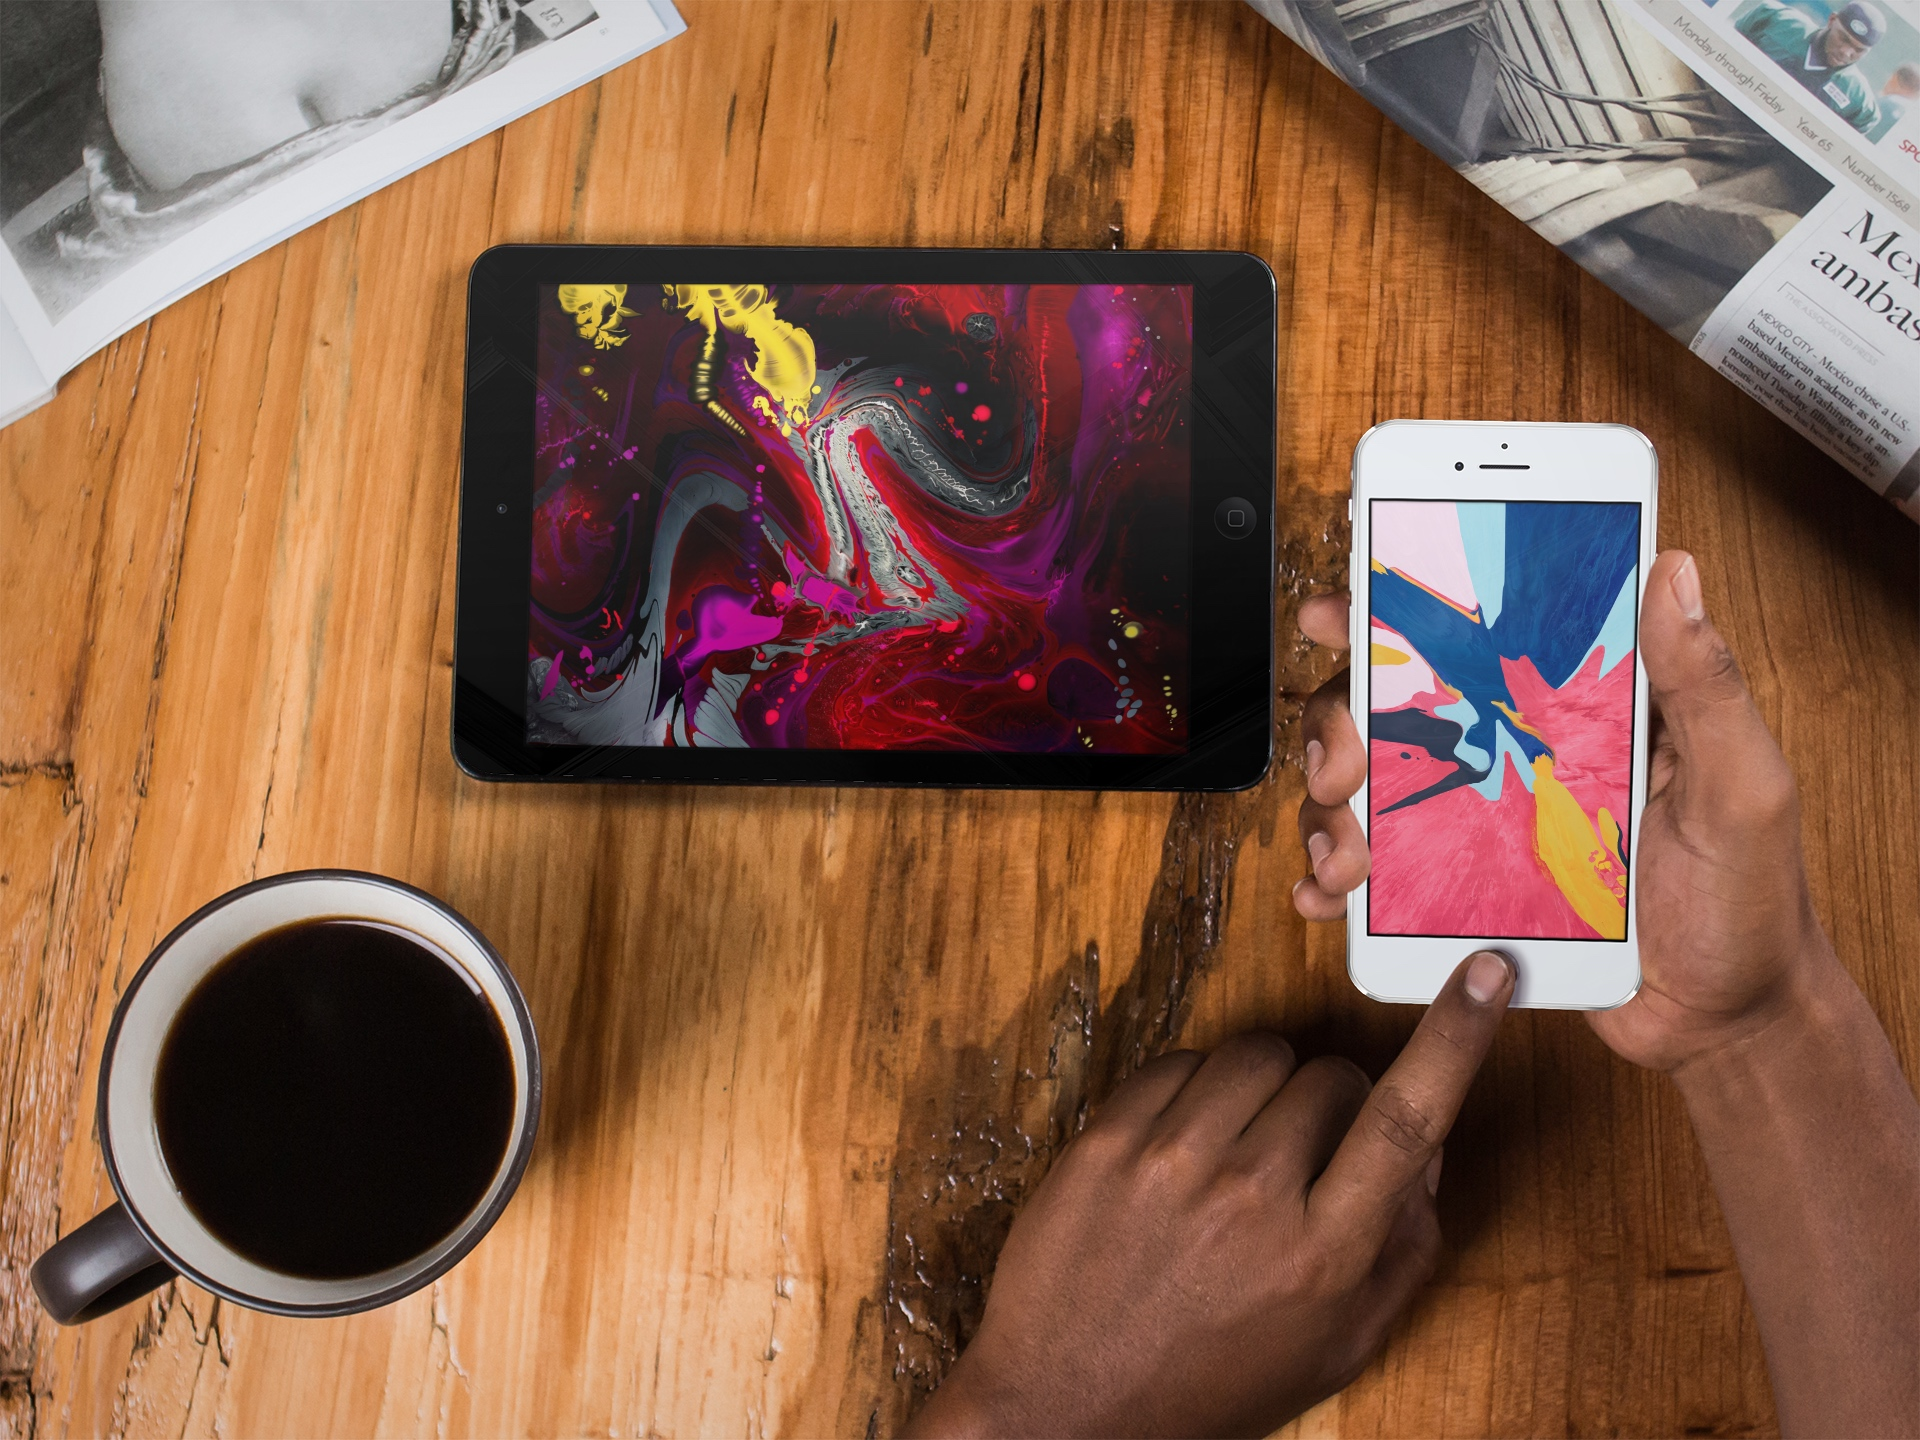 Download iPad Pro and MacBook Air wallpapers for iPhone and iPad 1920x1440